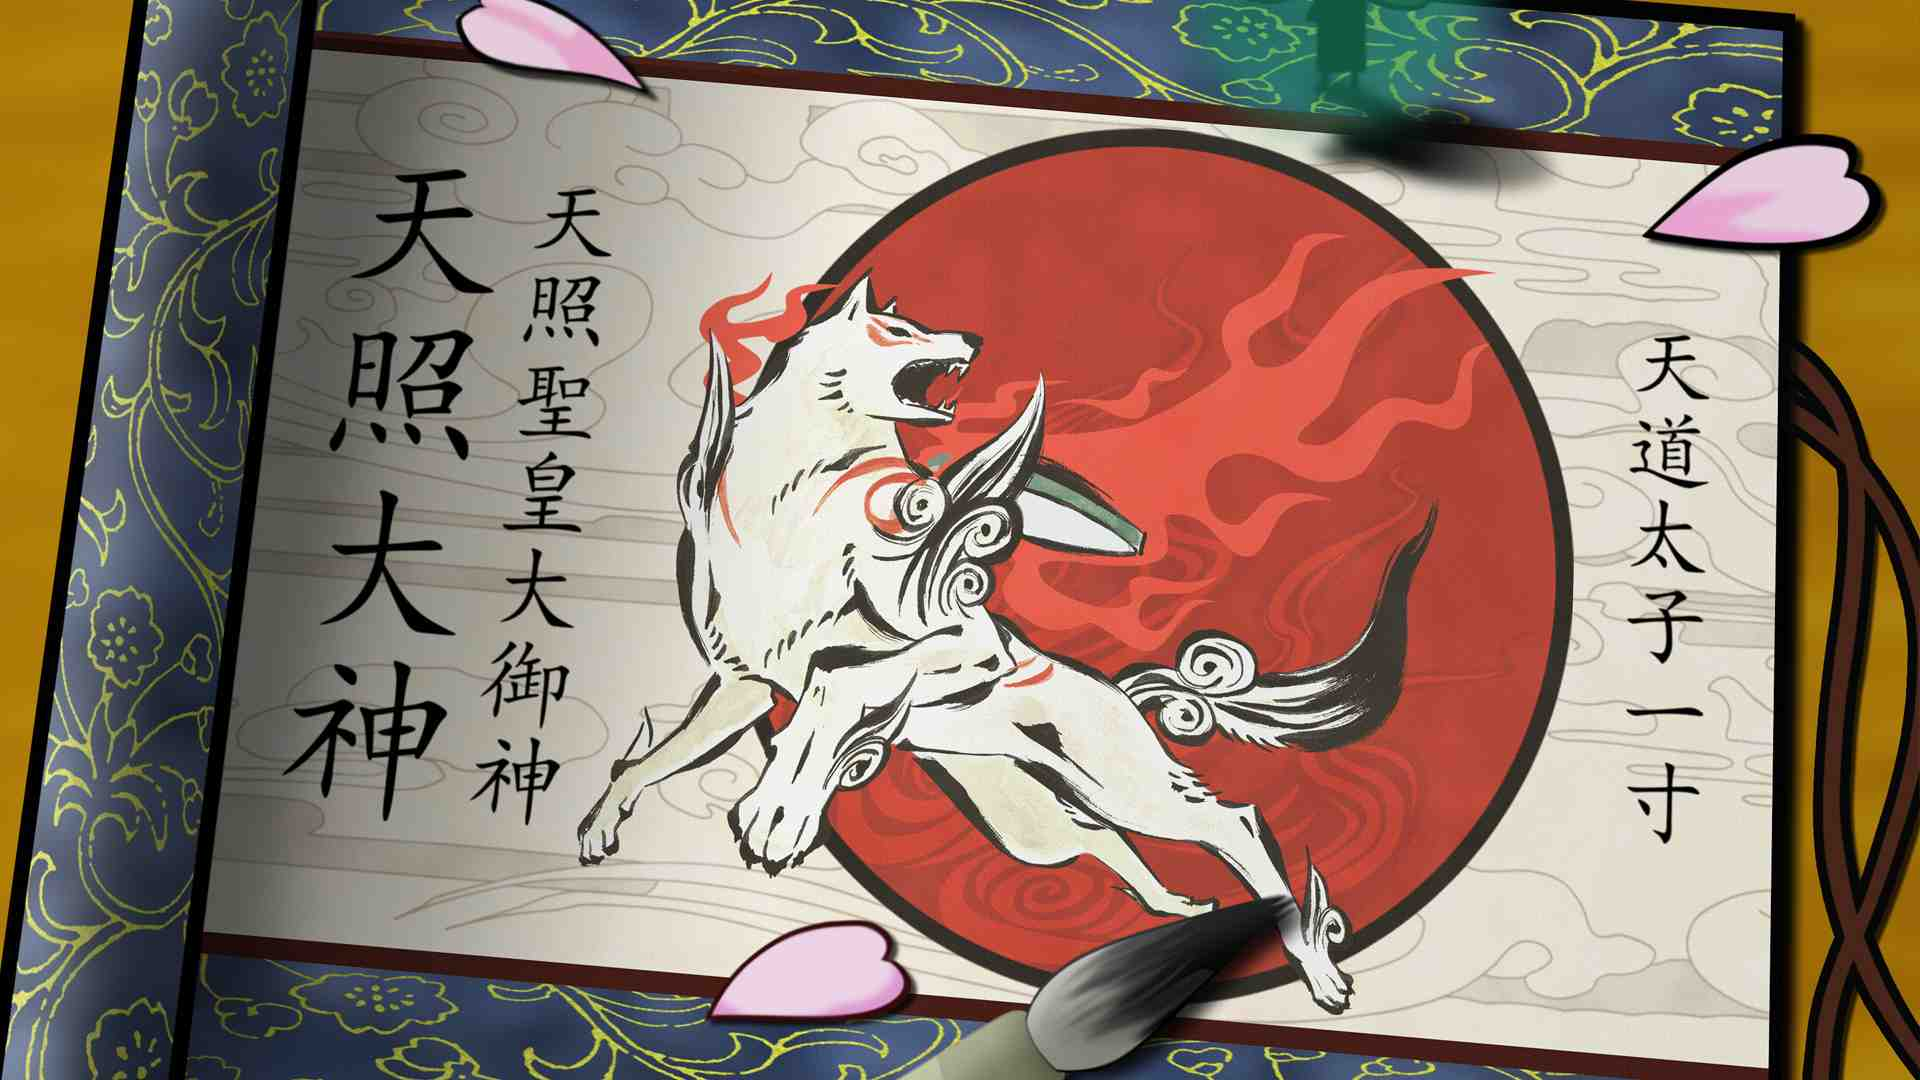 Okami plans for Japan only